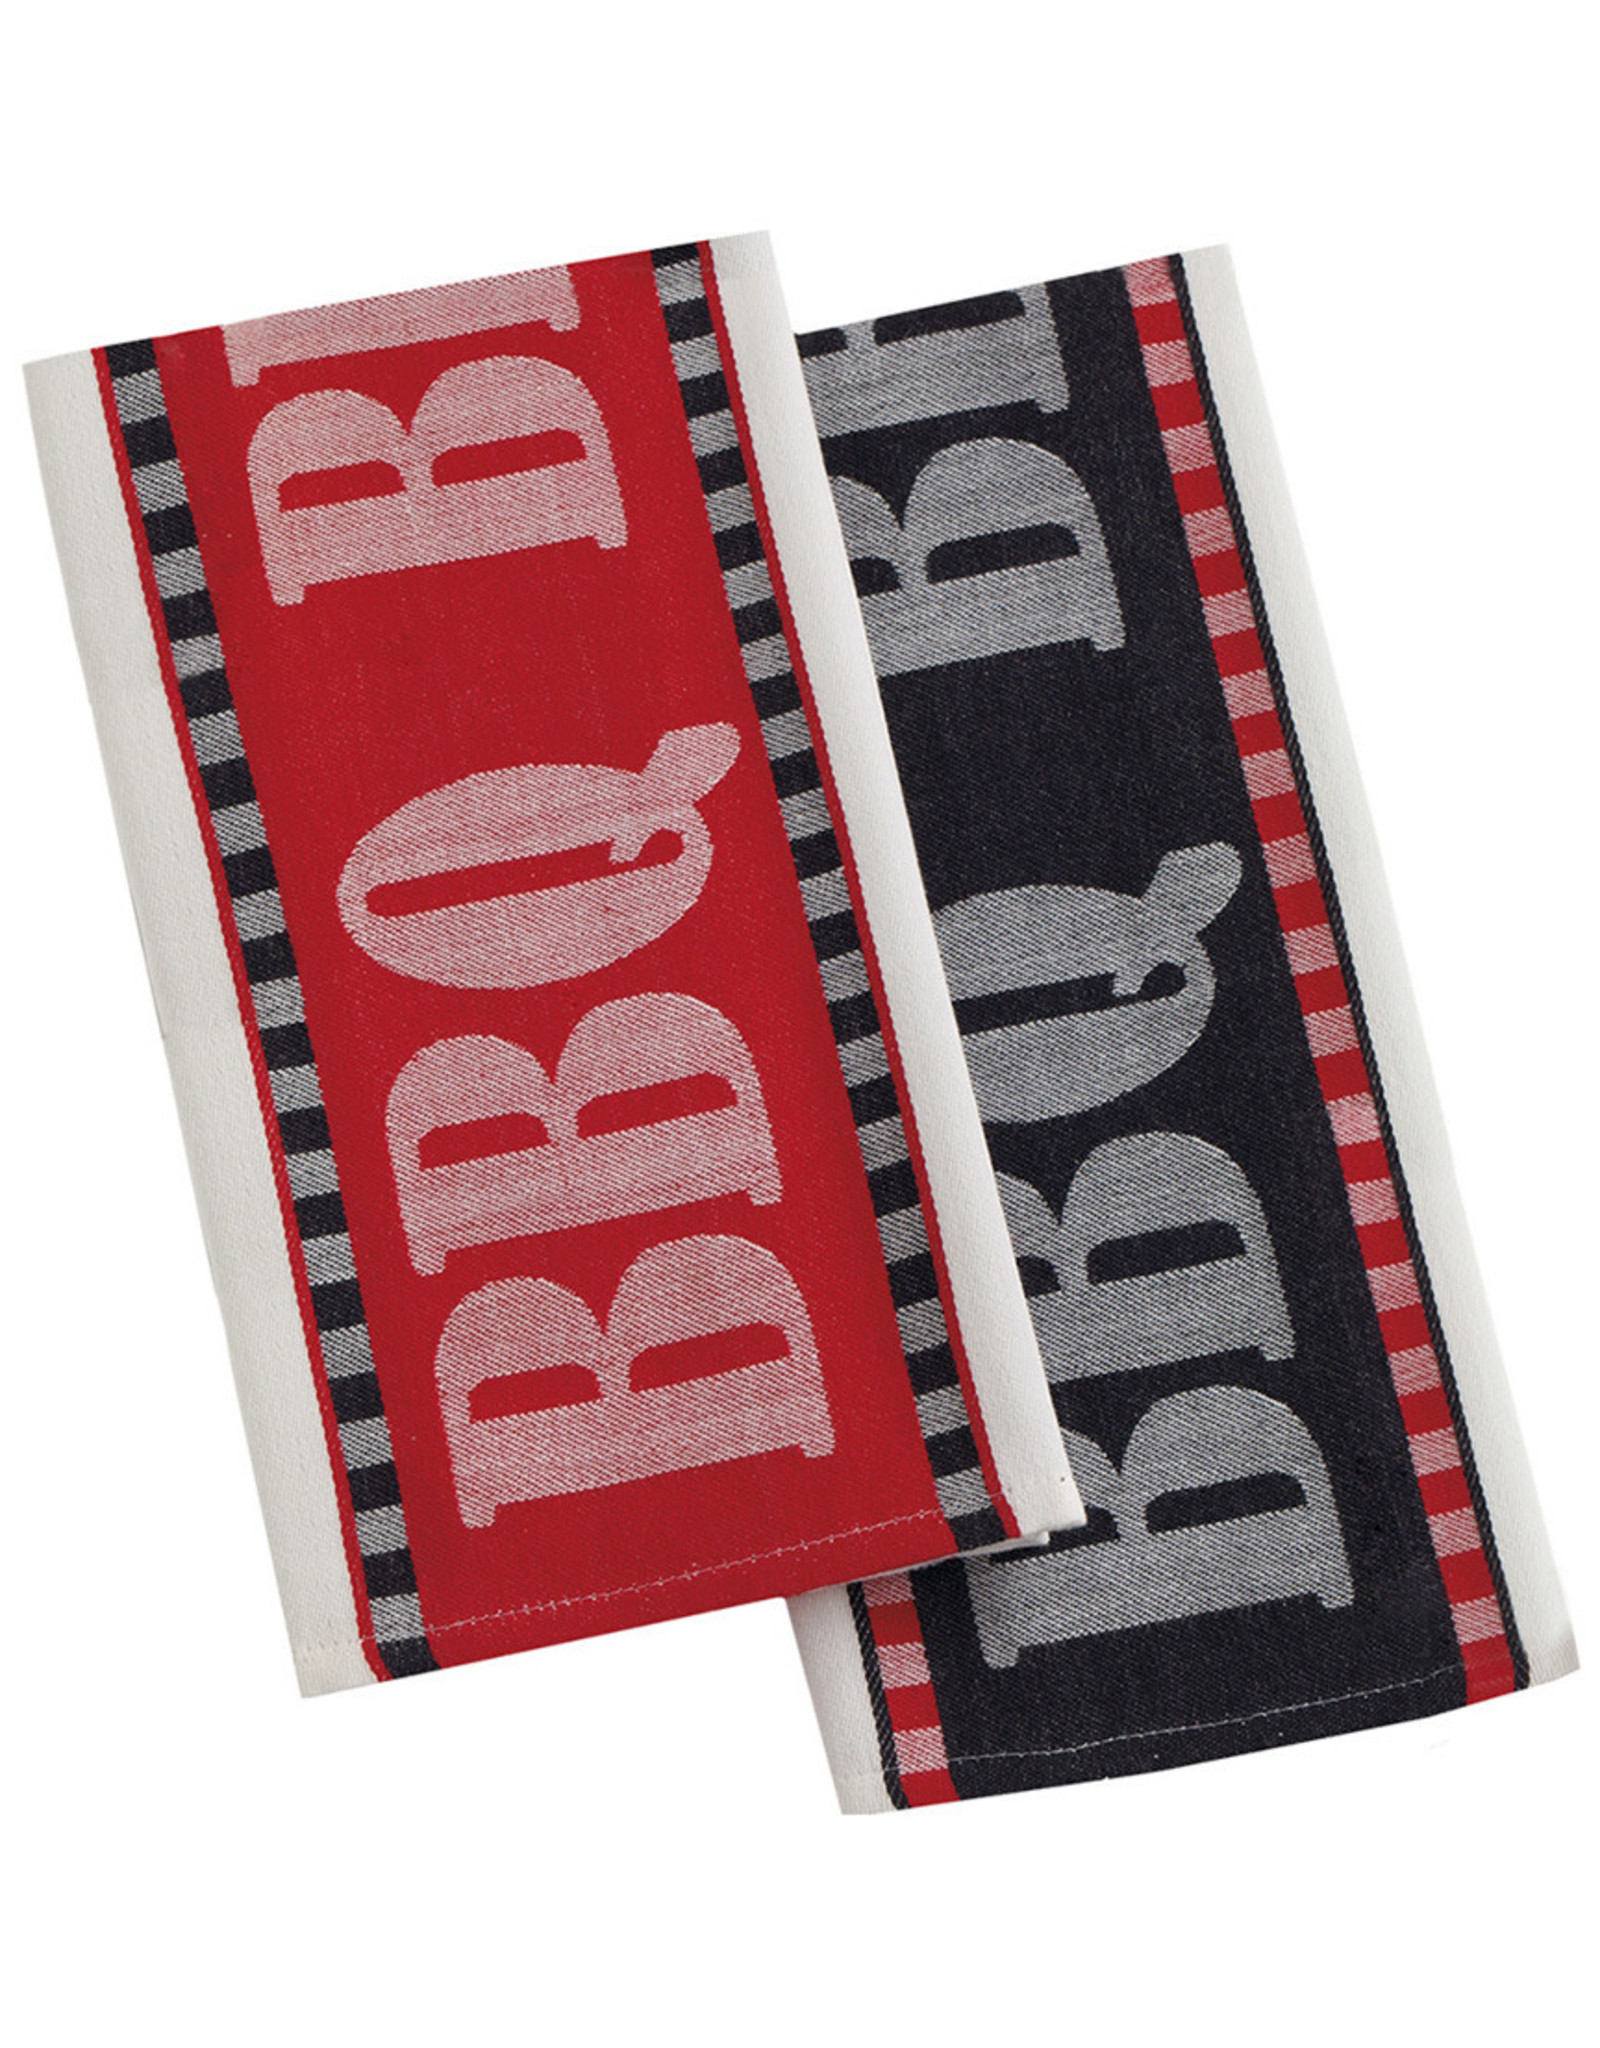 Design Imports Black BBQ Kitchen Towel